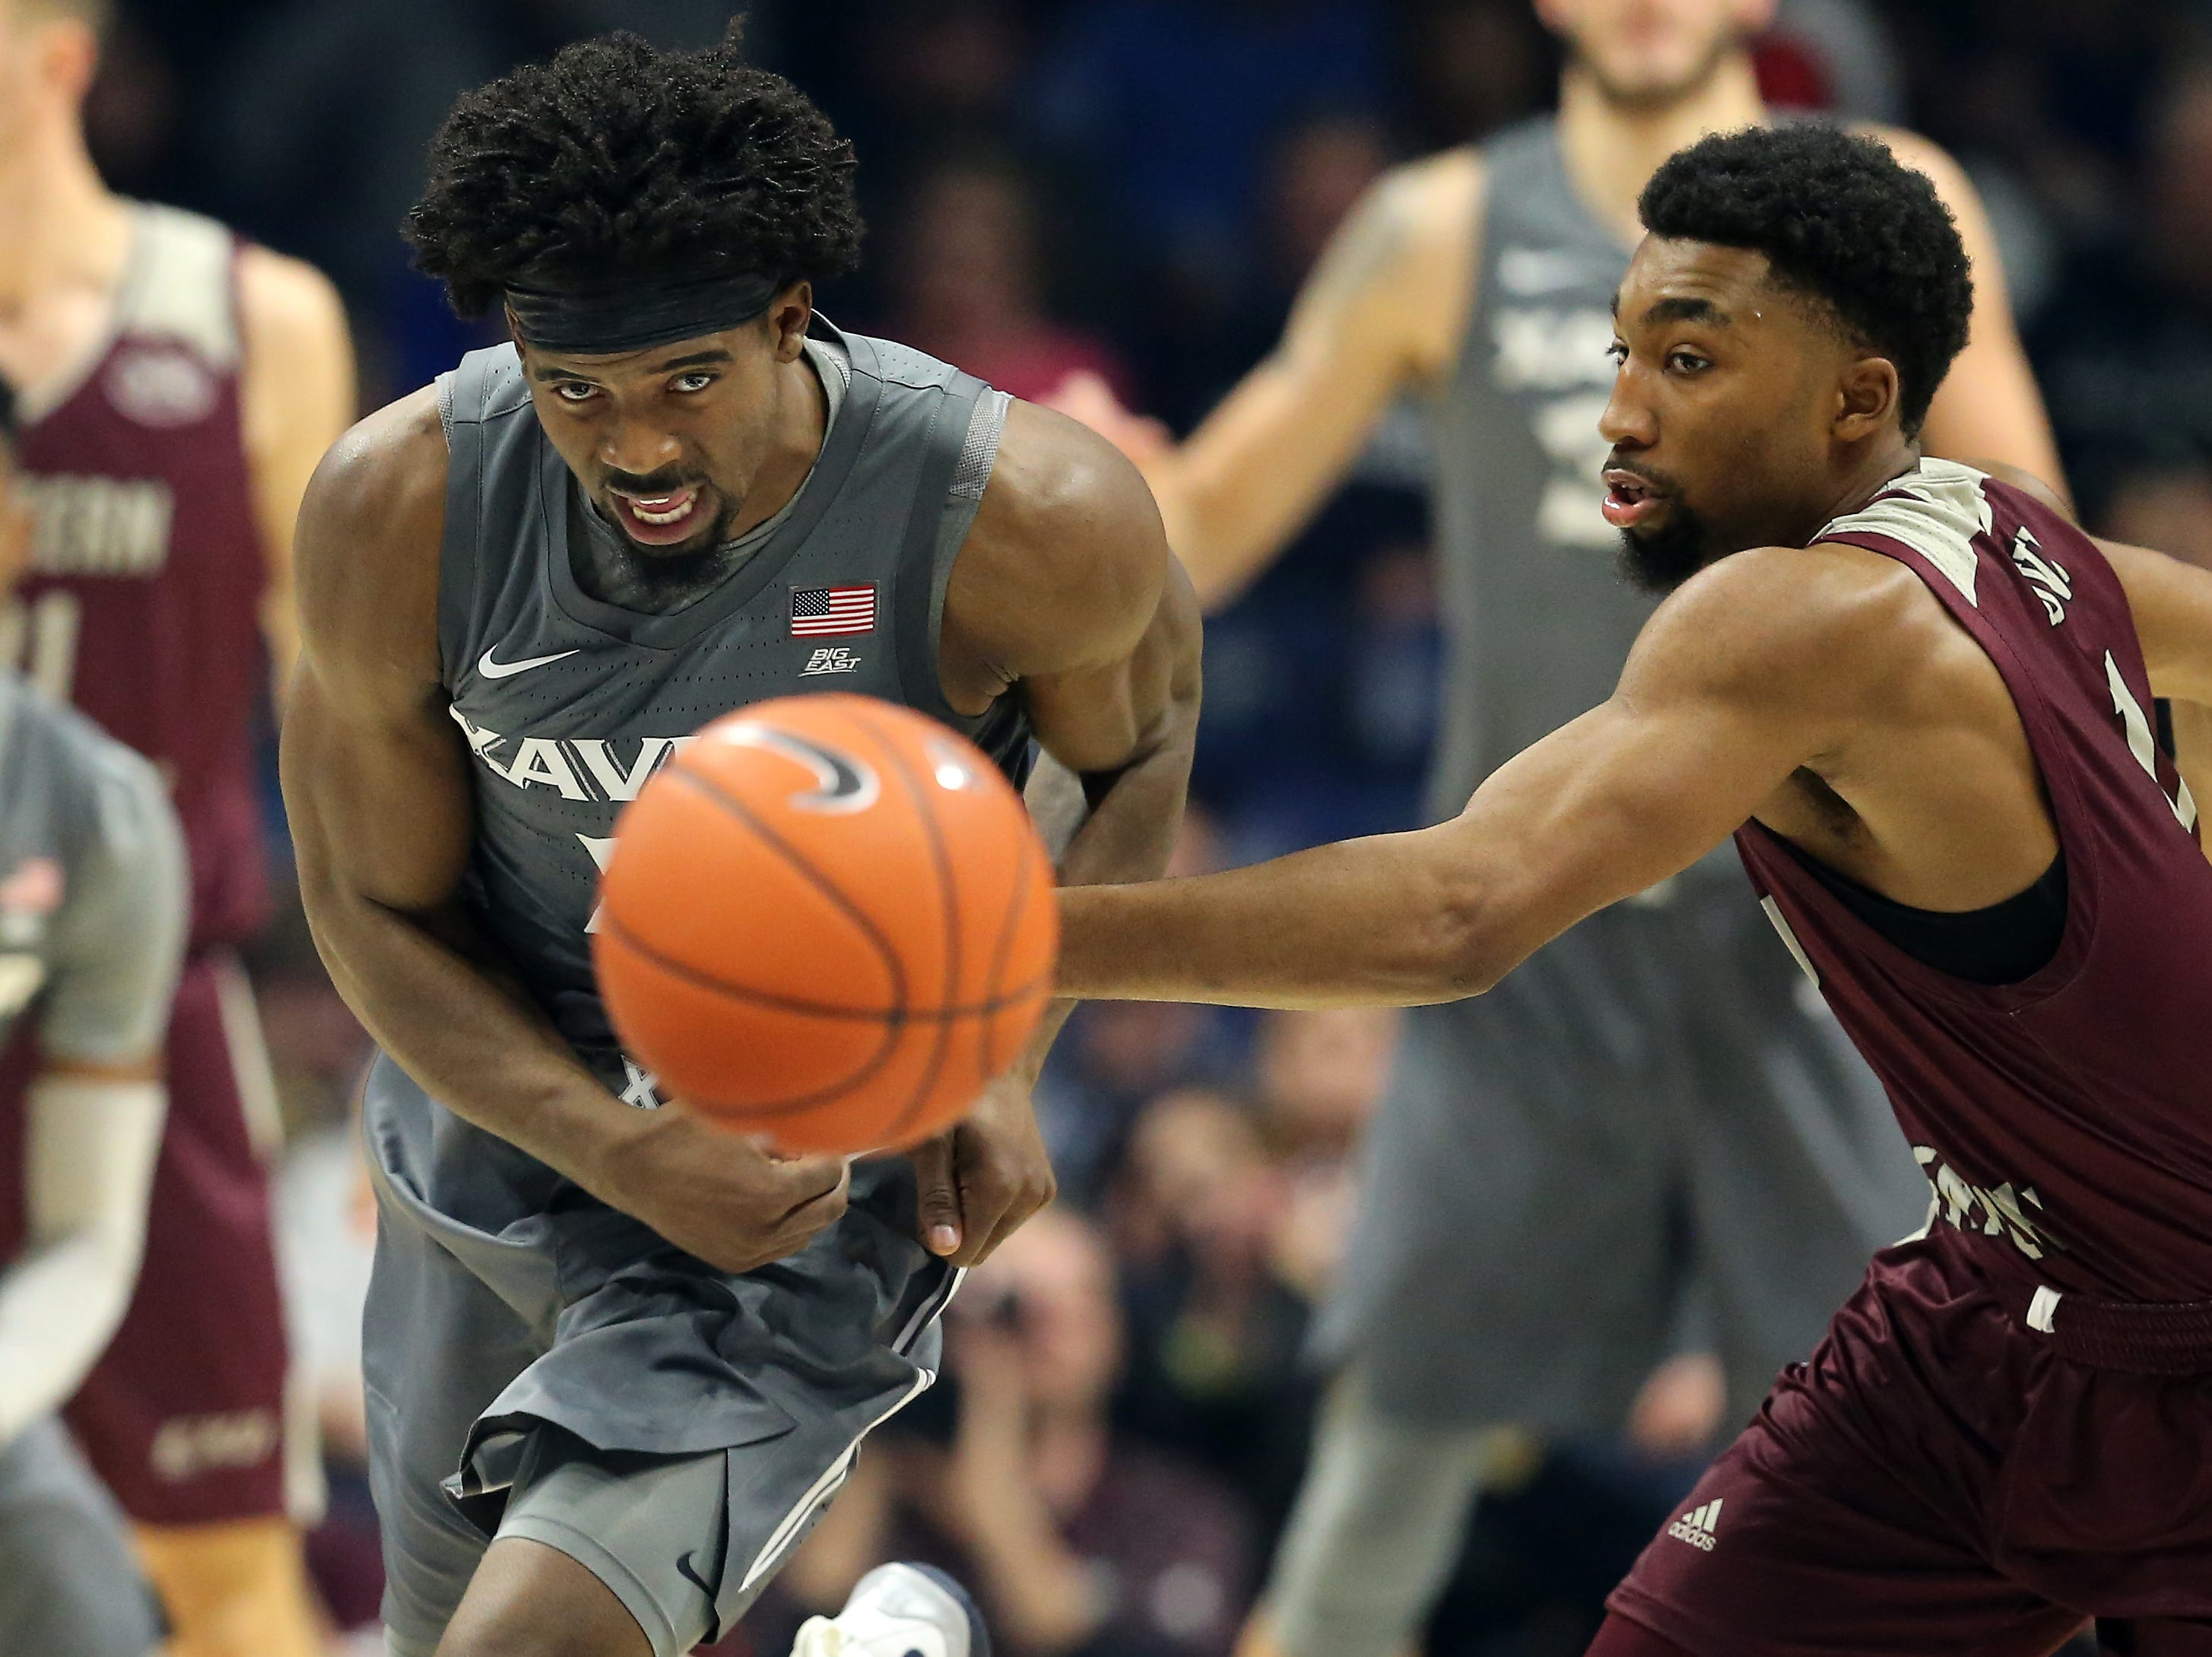 Xavier Musketeers forward Tyrique Jones (0) steals the ball away from Eastern Kentucky Colonels guard Jomaru Brown (11) in the first half of an NCAA college basketball game, Saturday, Dec. 15, 2018, at Cintas Center in Cincinnati, Ohio